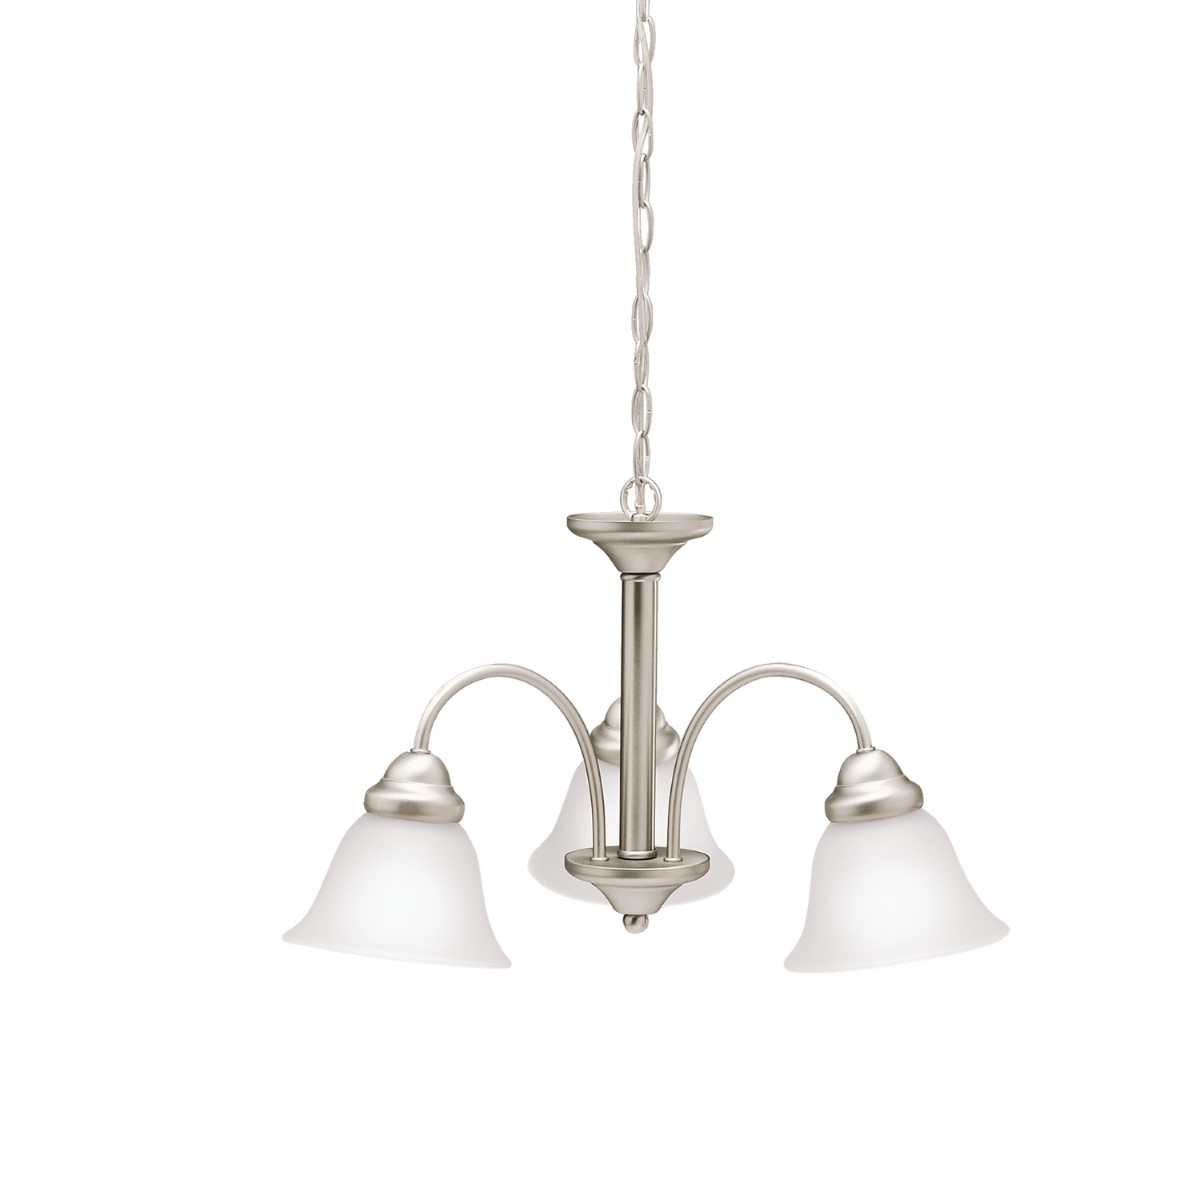 Kichler Wynberg Wynberg Chandelier with Satin Etched Steel Shade - Brushed Nickel (3293NI)